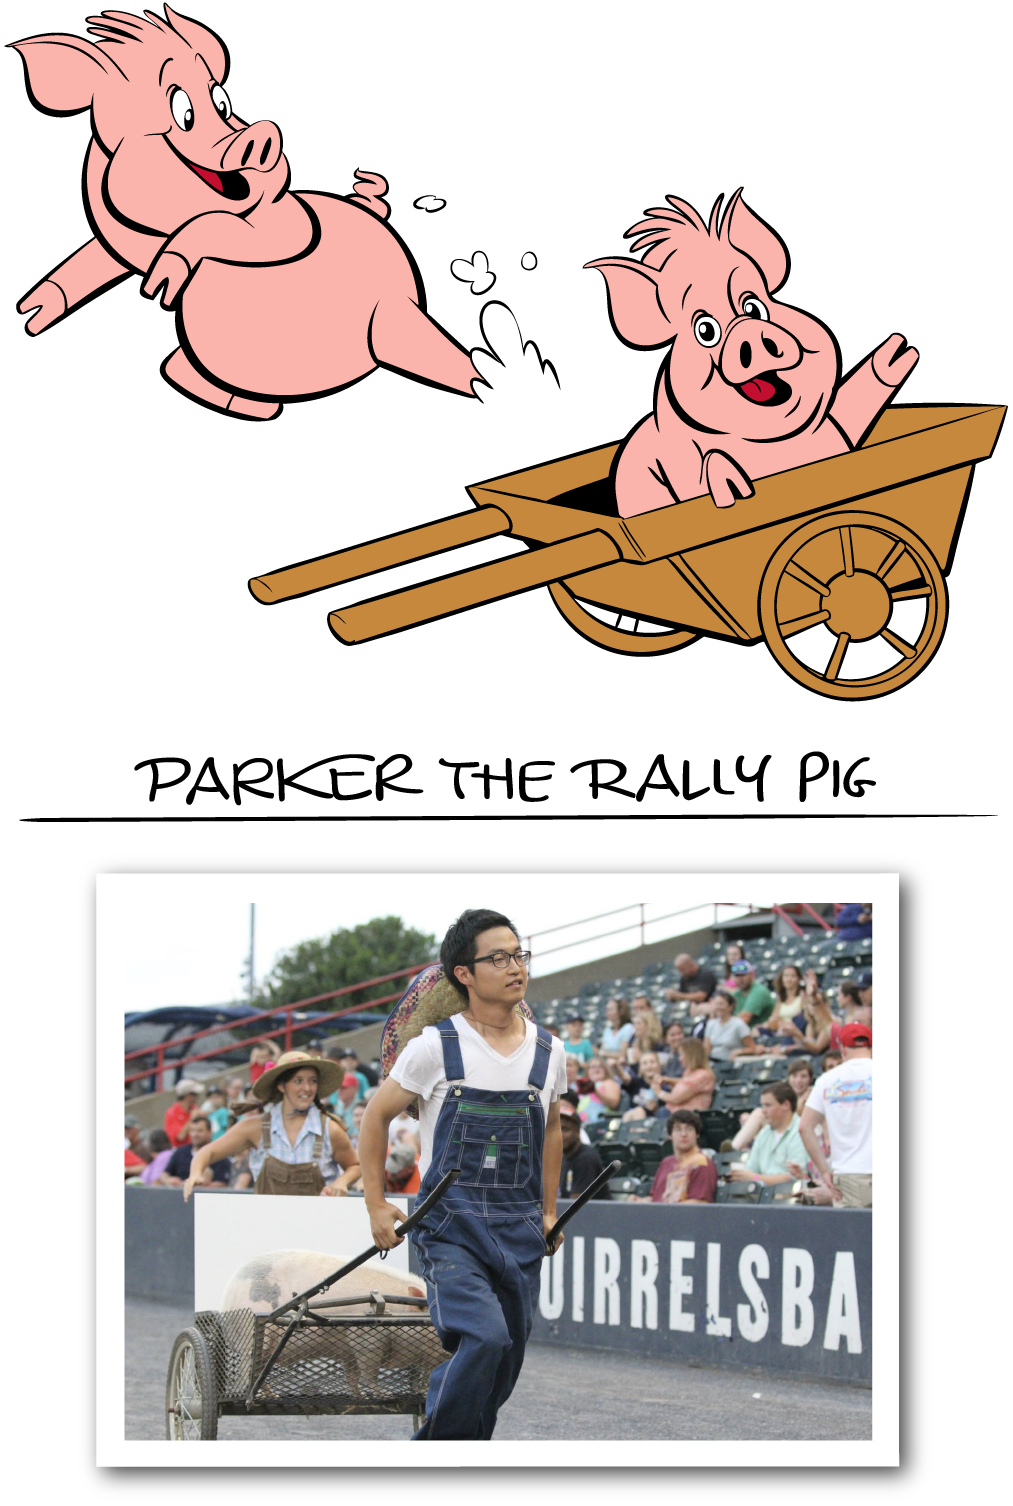 Richmond-3-BallparkMagic_Pig-1.png